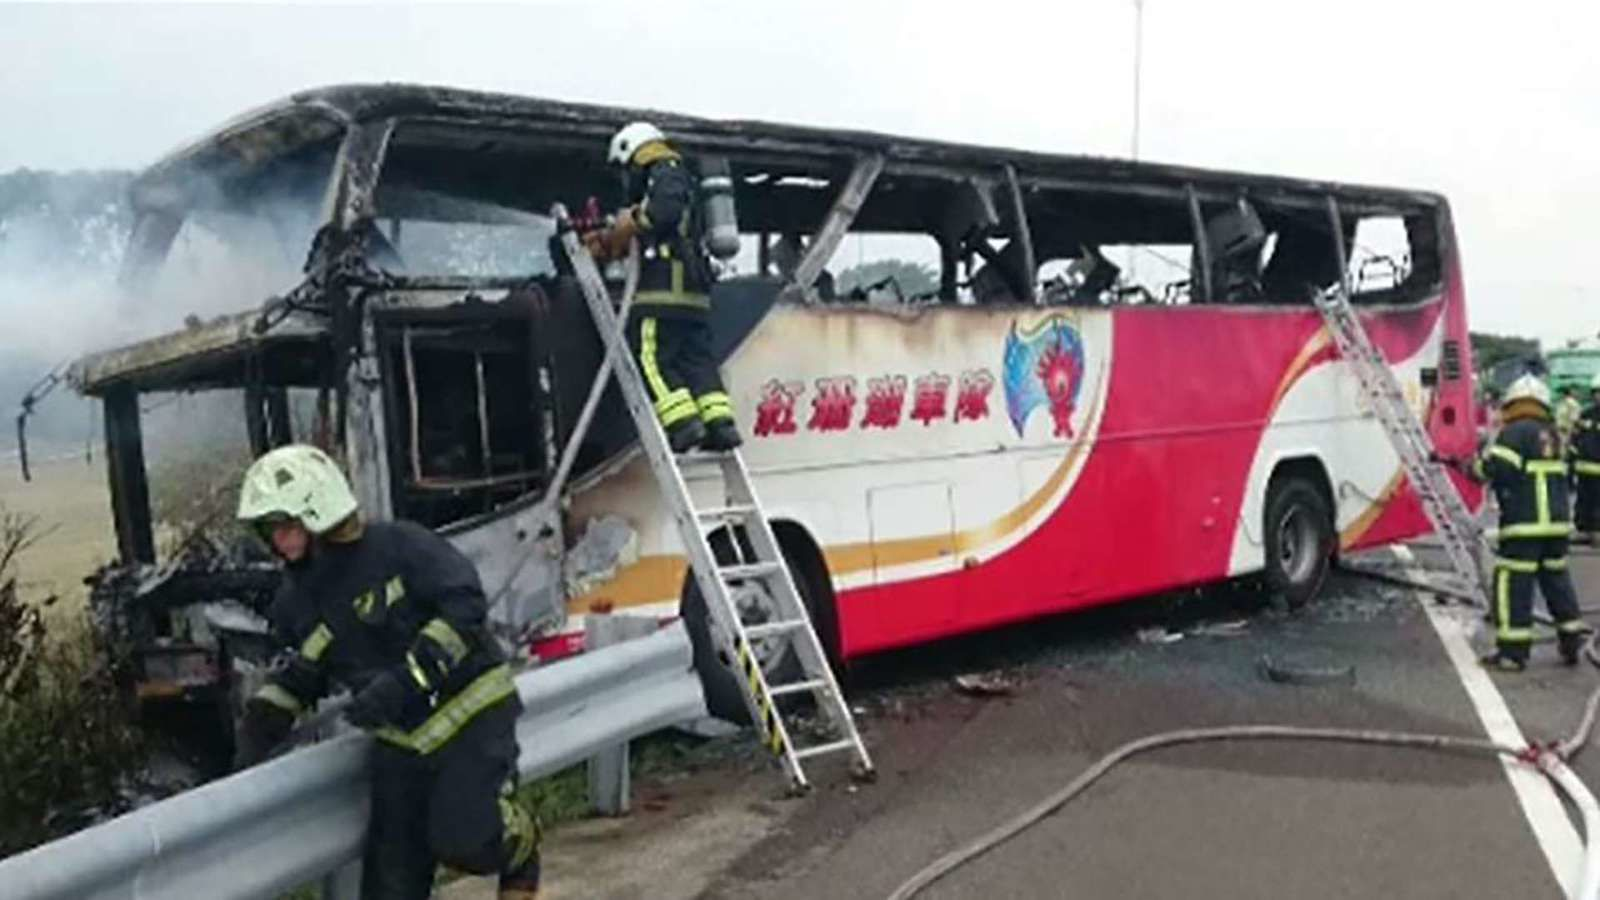 Les accidents de la route mortels en forte baisse en Chine